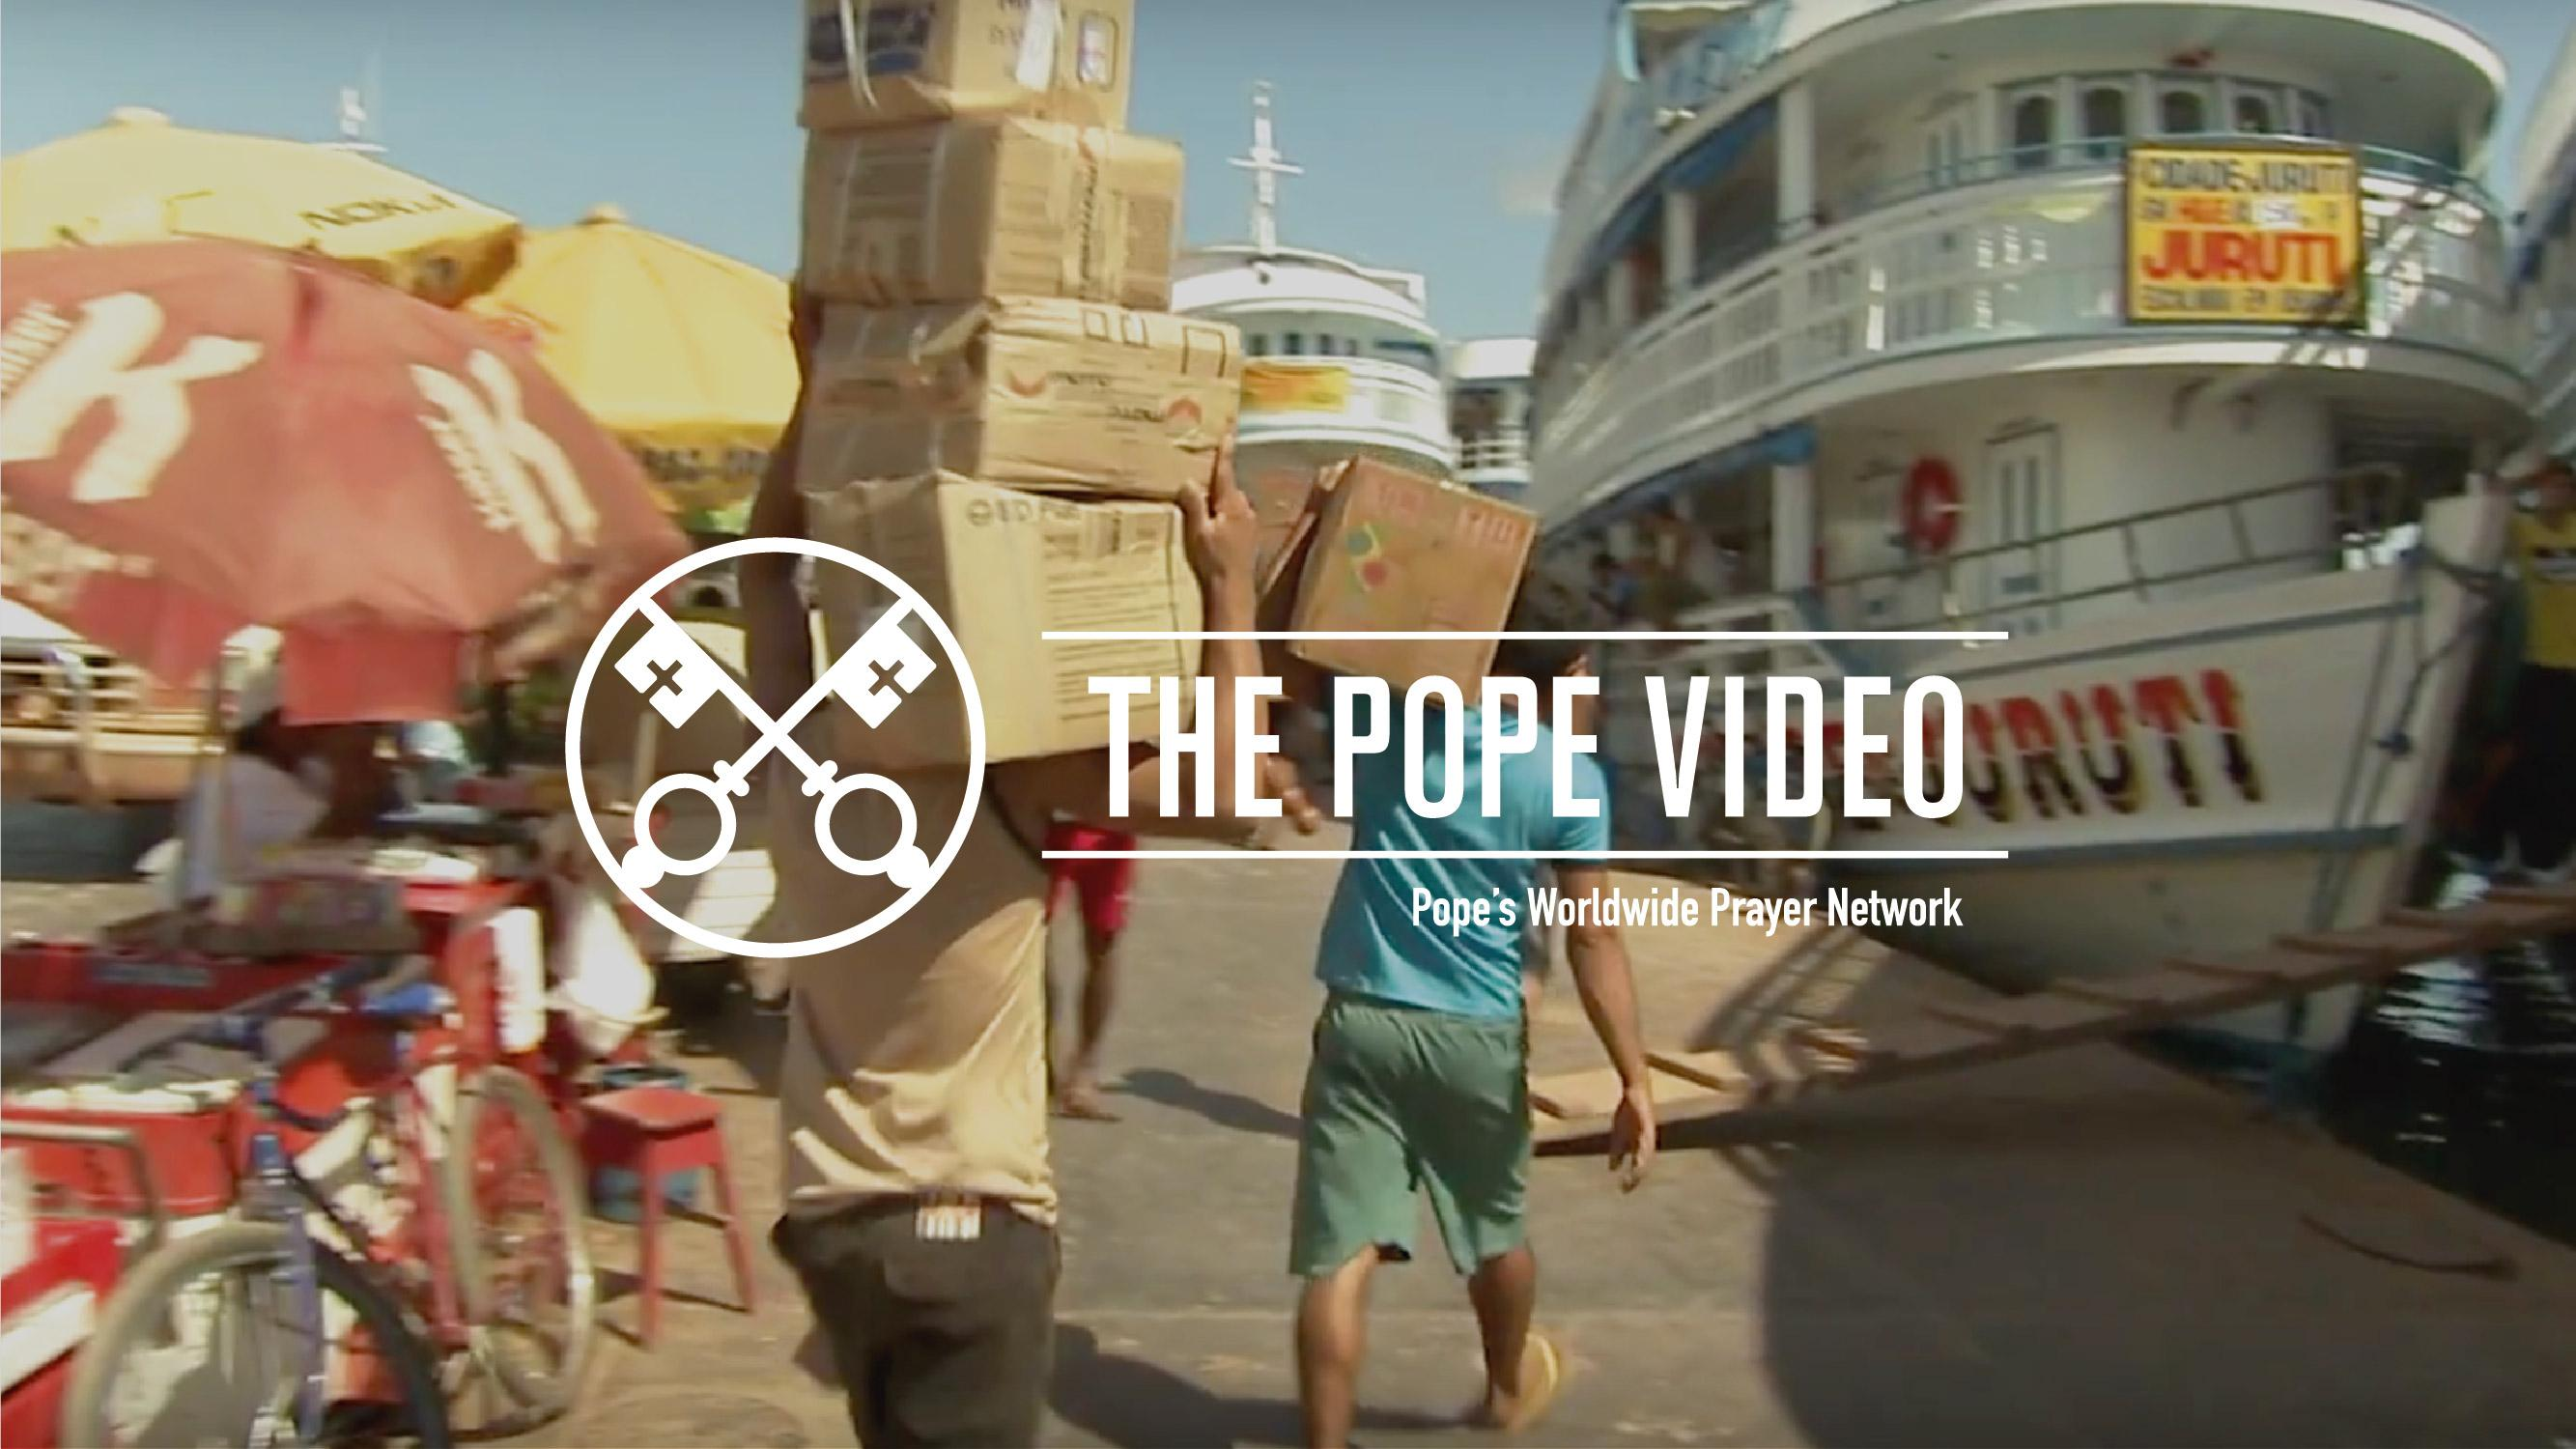 Official-Image-The-Pope-Video-10-OCT-2017-Rights-of-workers-and-the-unemployed-1-English